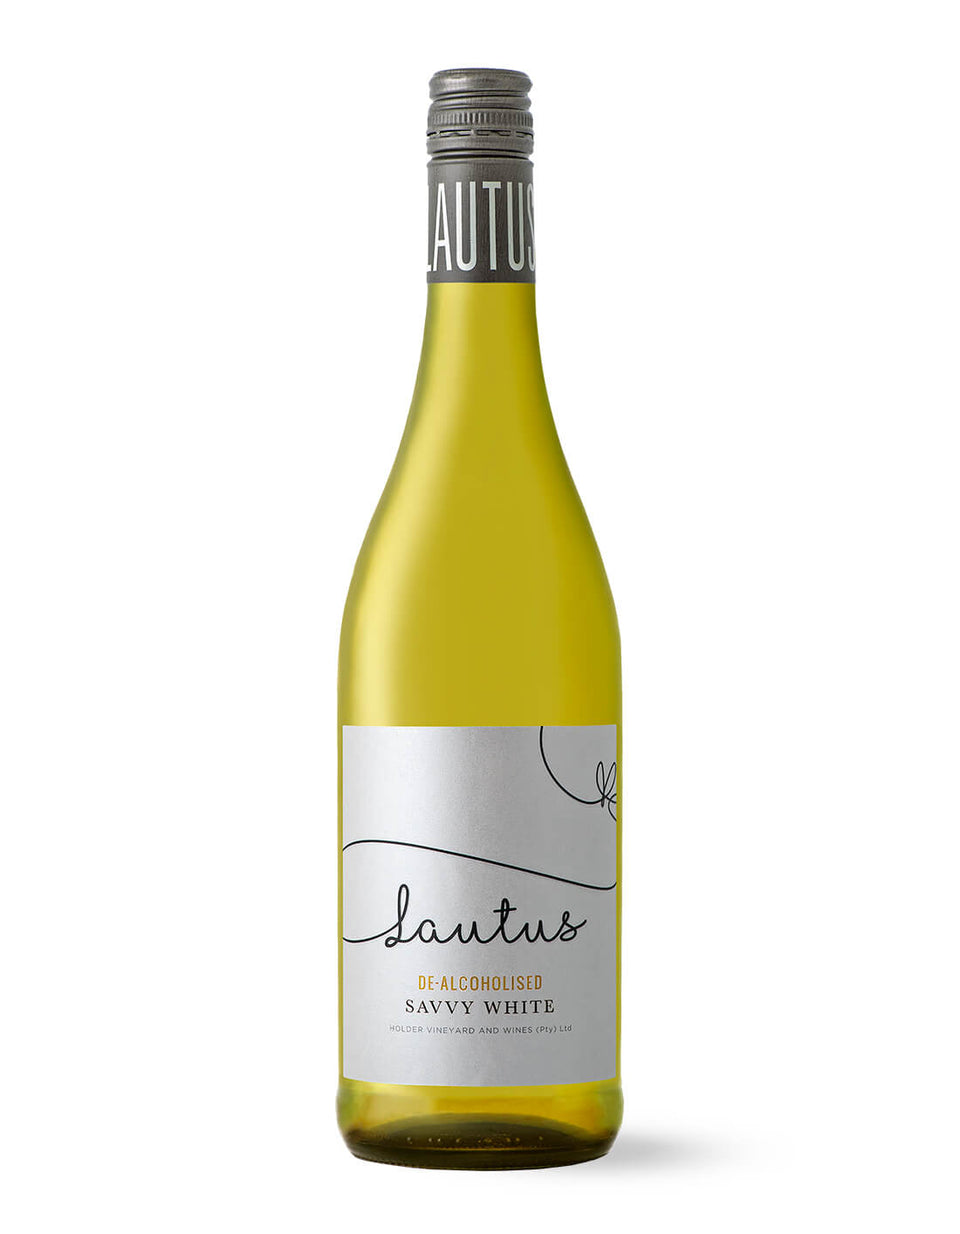 Lautus De-Alcoholised Savvy White 750mL - Craftzero